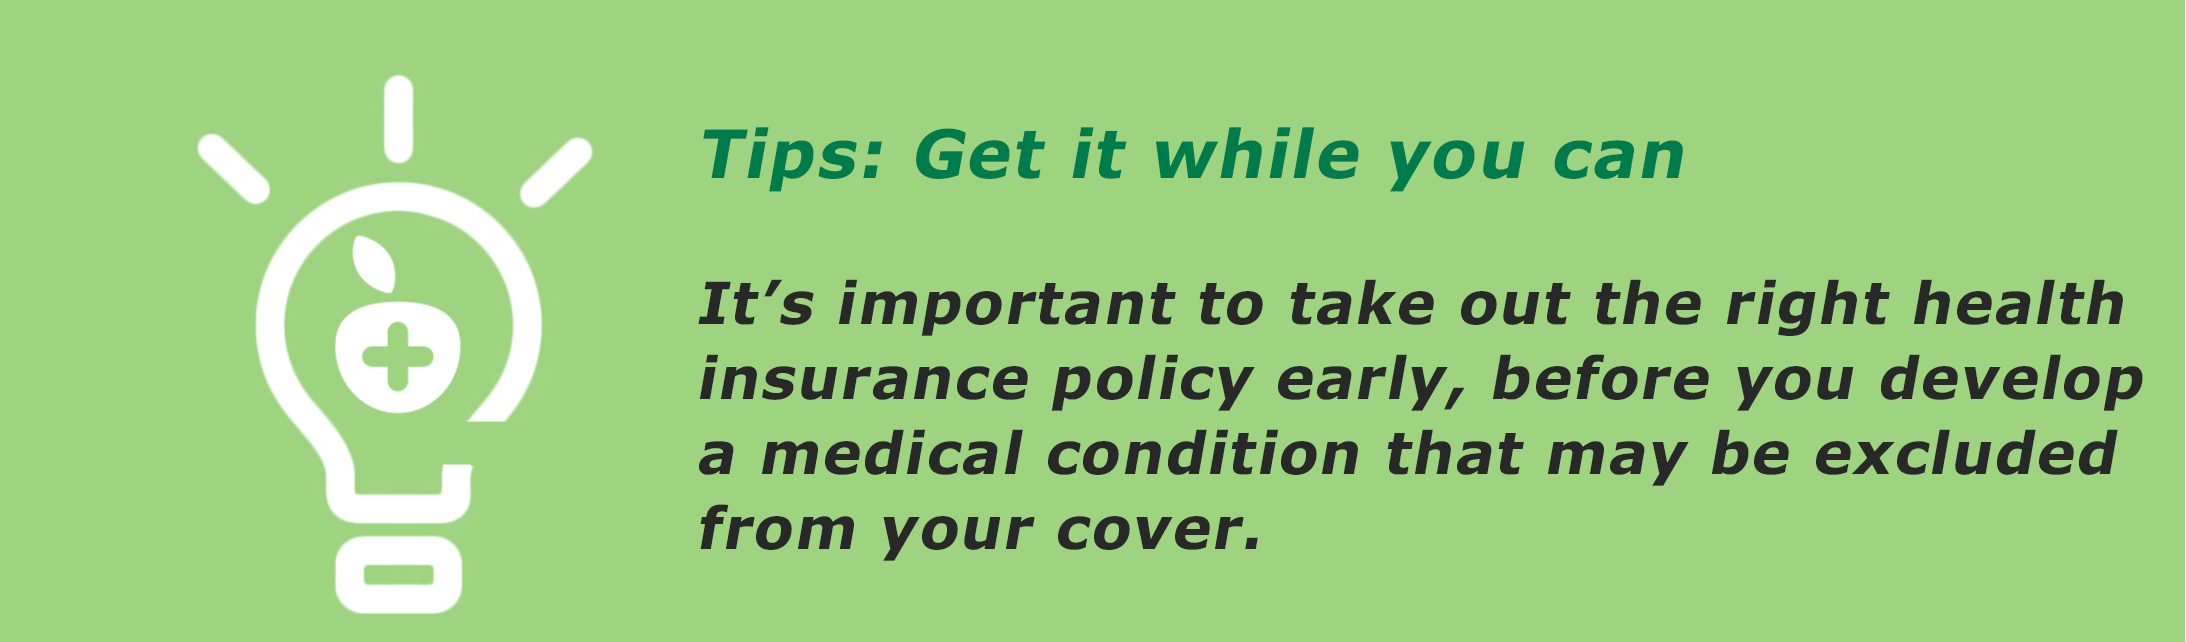 health insurance guide-tip1